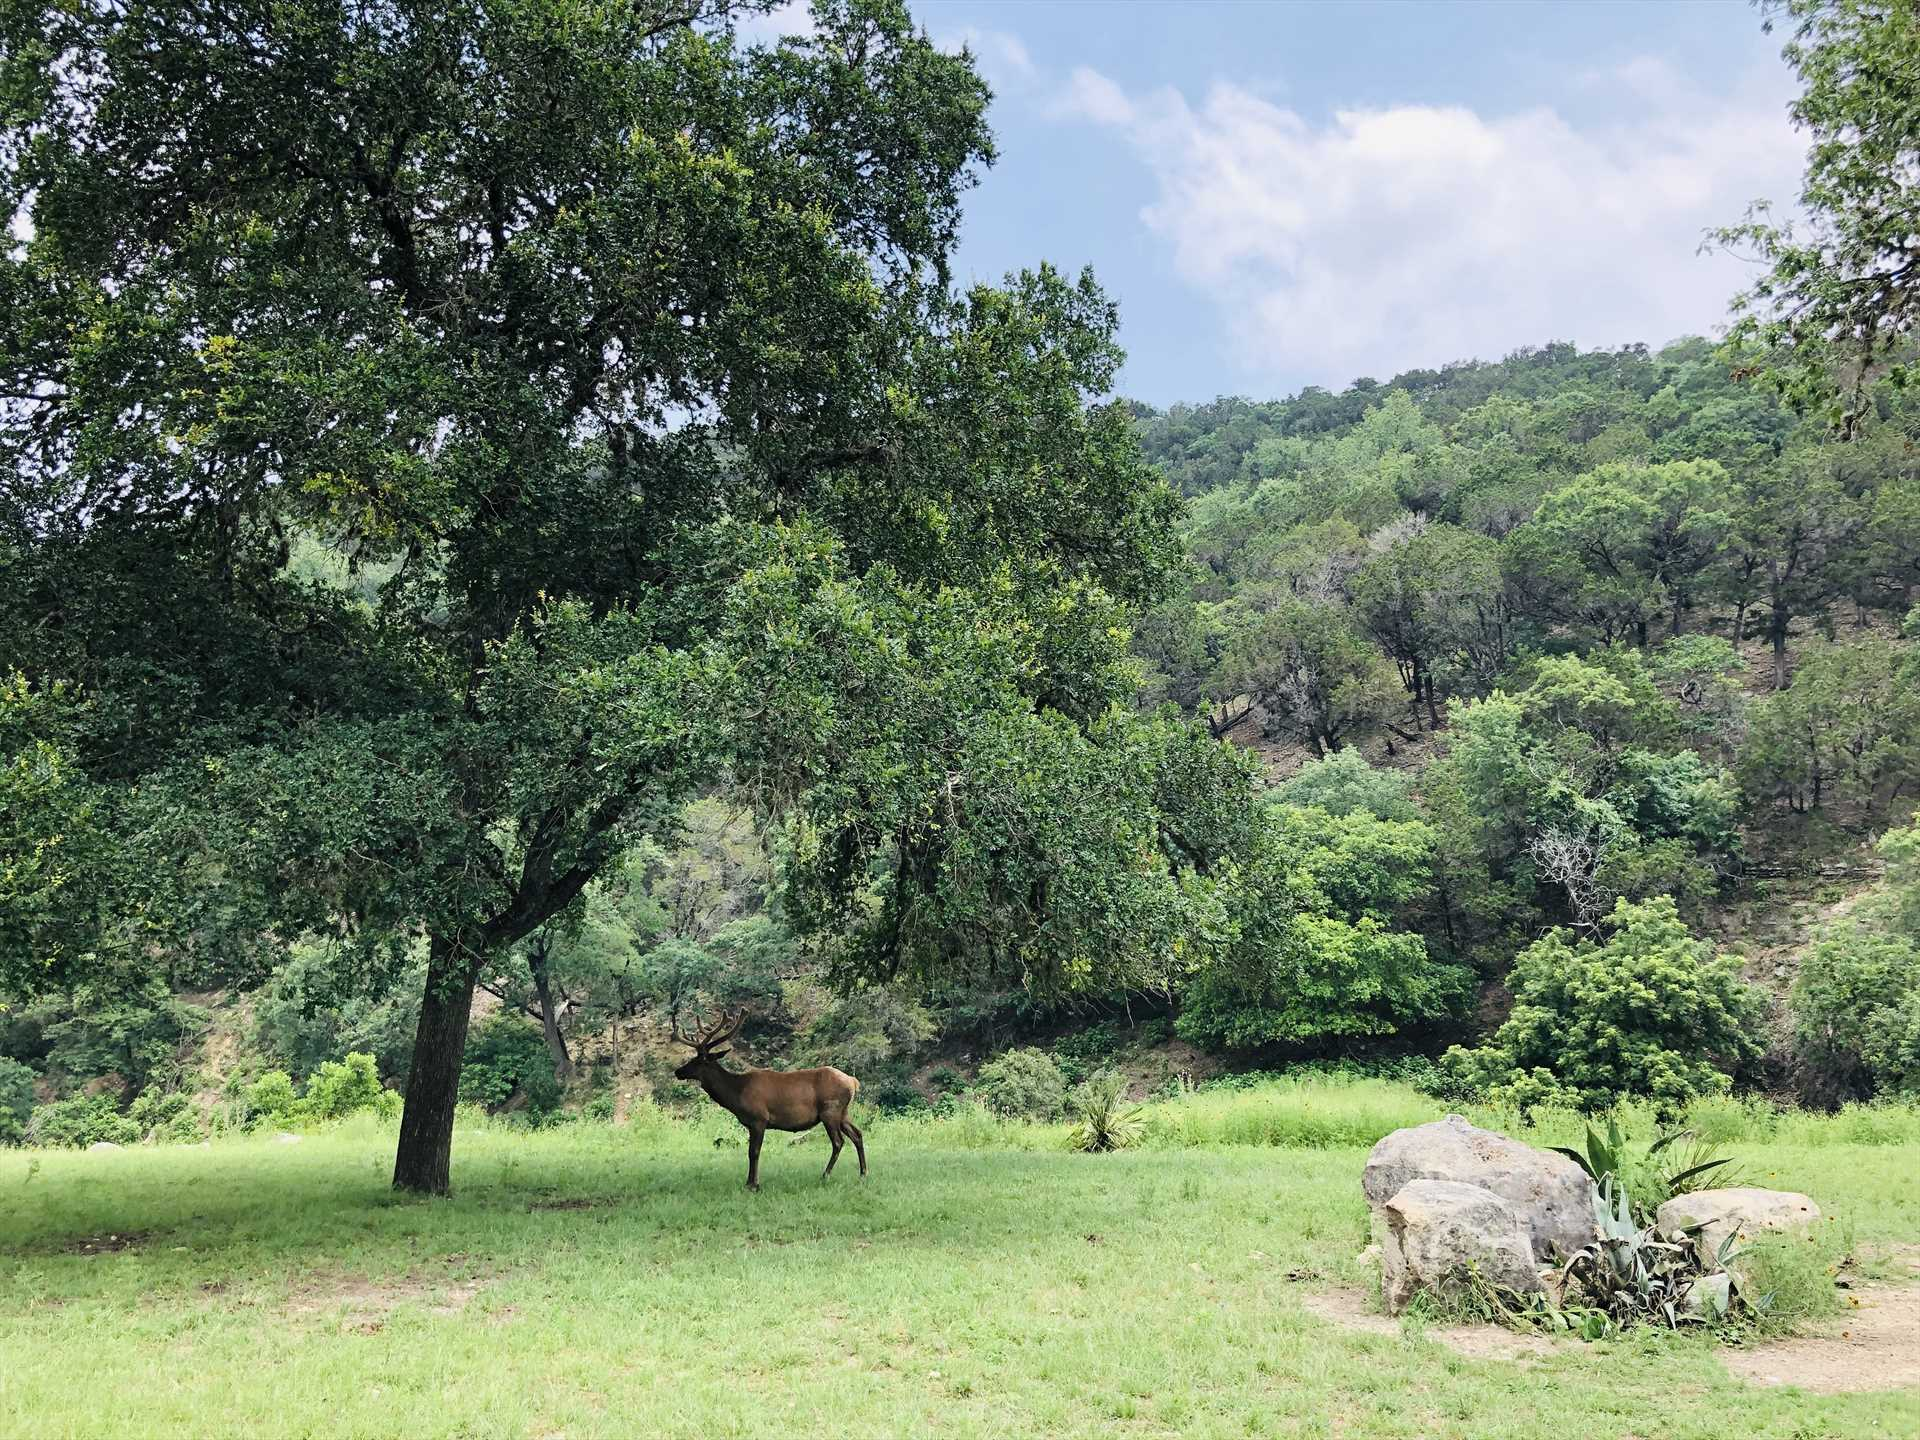 There's no better place to find sweet solitude than the Texas Hill Country.